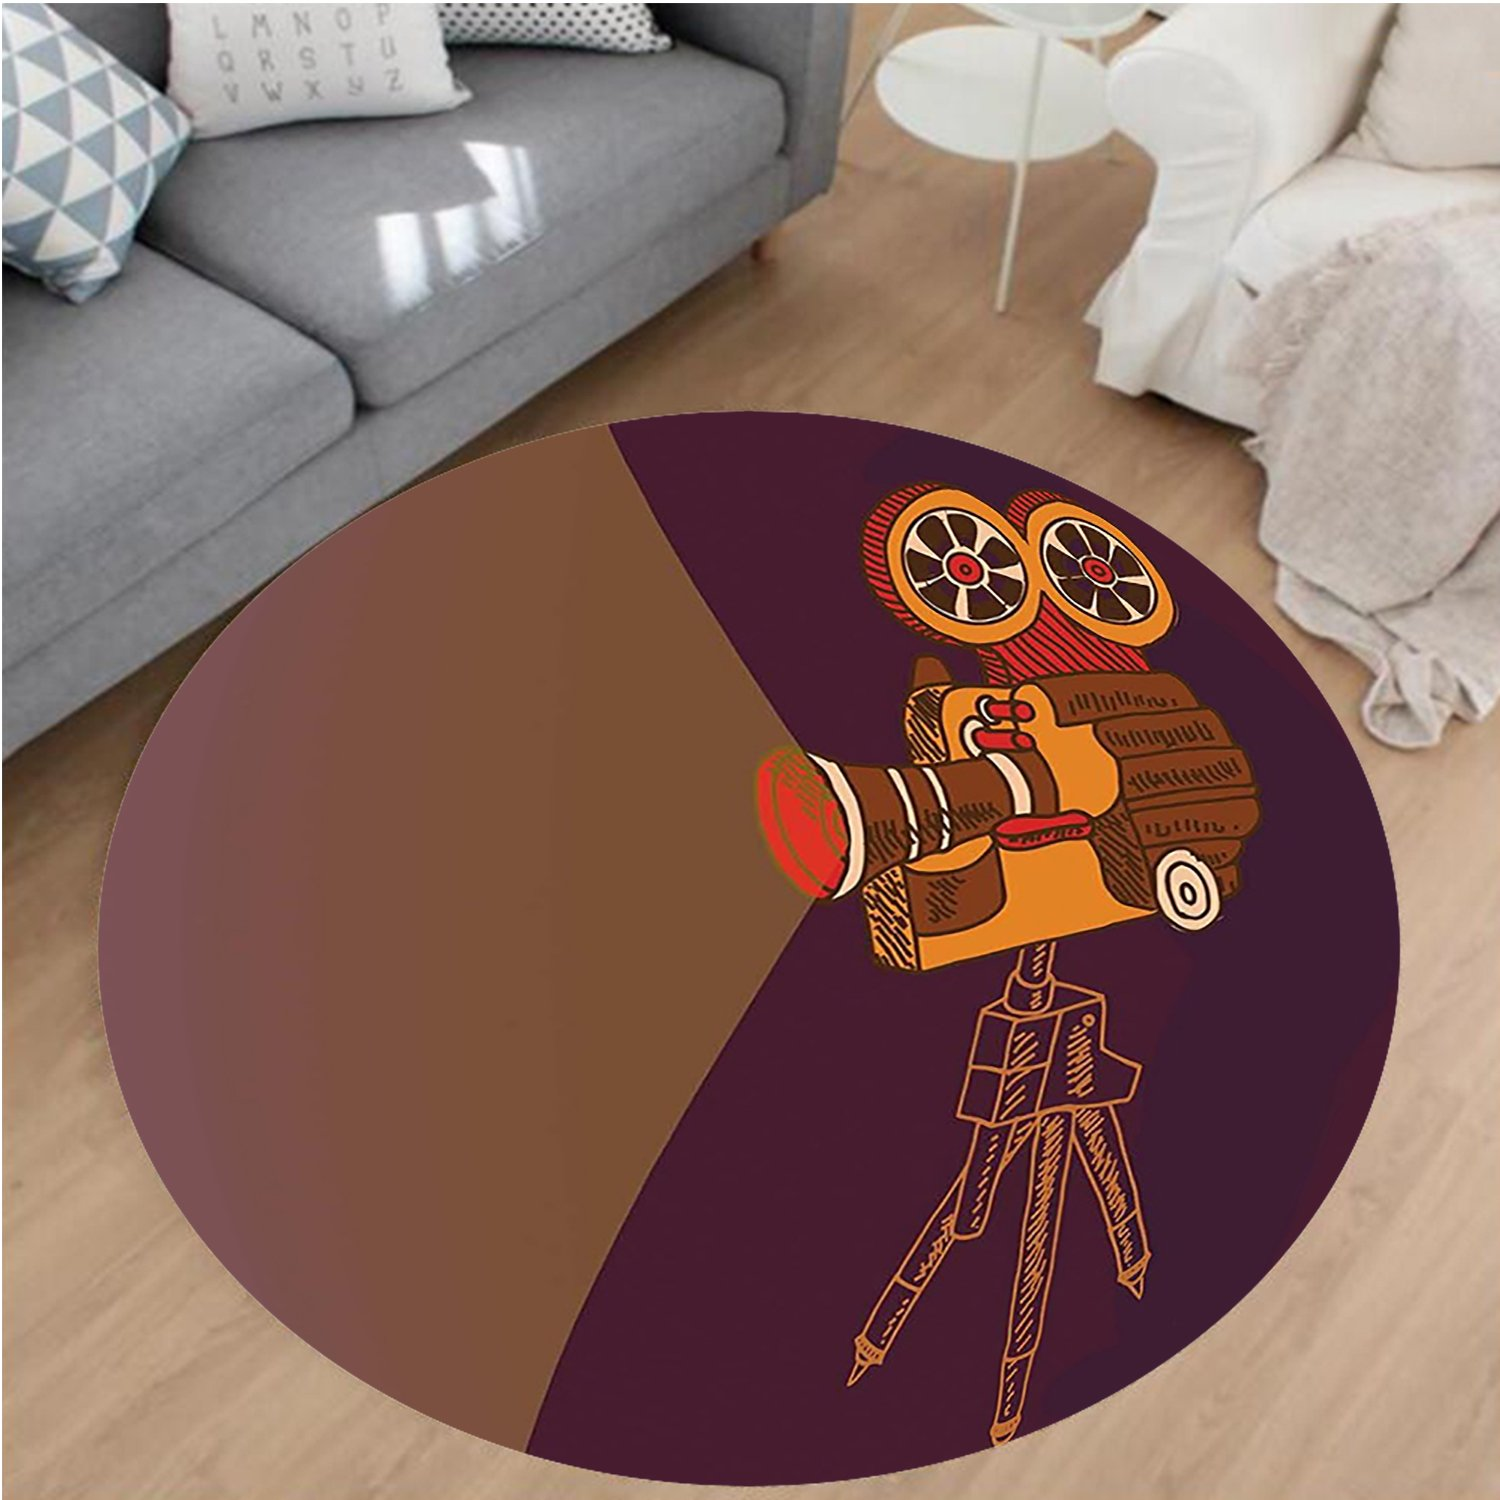 Nalahome Modern Flannel Microfiber Non-Slip Machine Washable Round Area Rug-cor Classic Movie Theater Machine with Cinema Fest Typography Past Filmmaker Brown Purple area rugs Home Decor-Round 67''